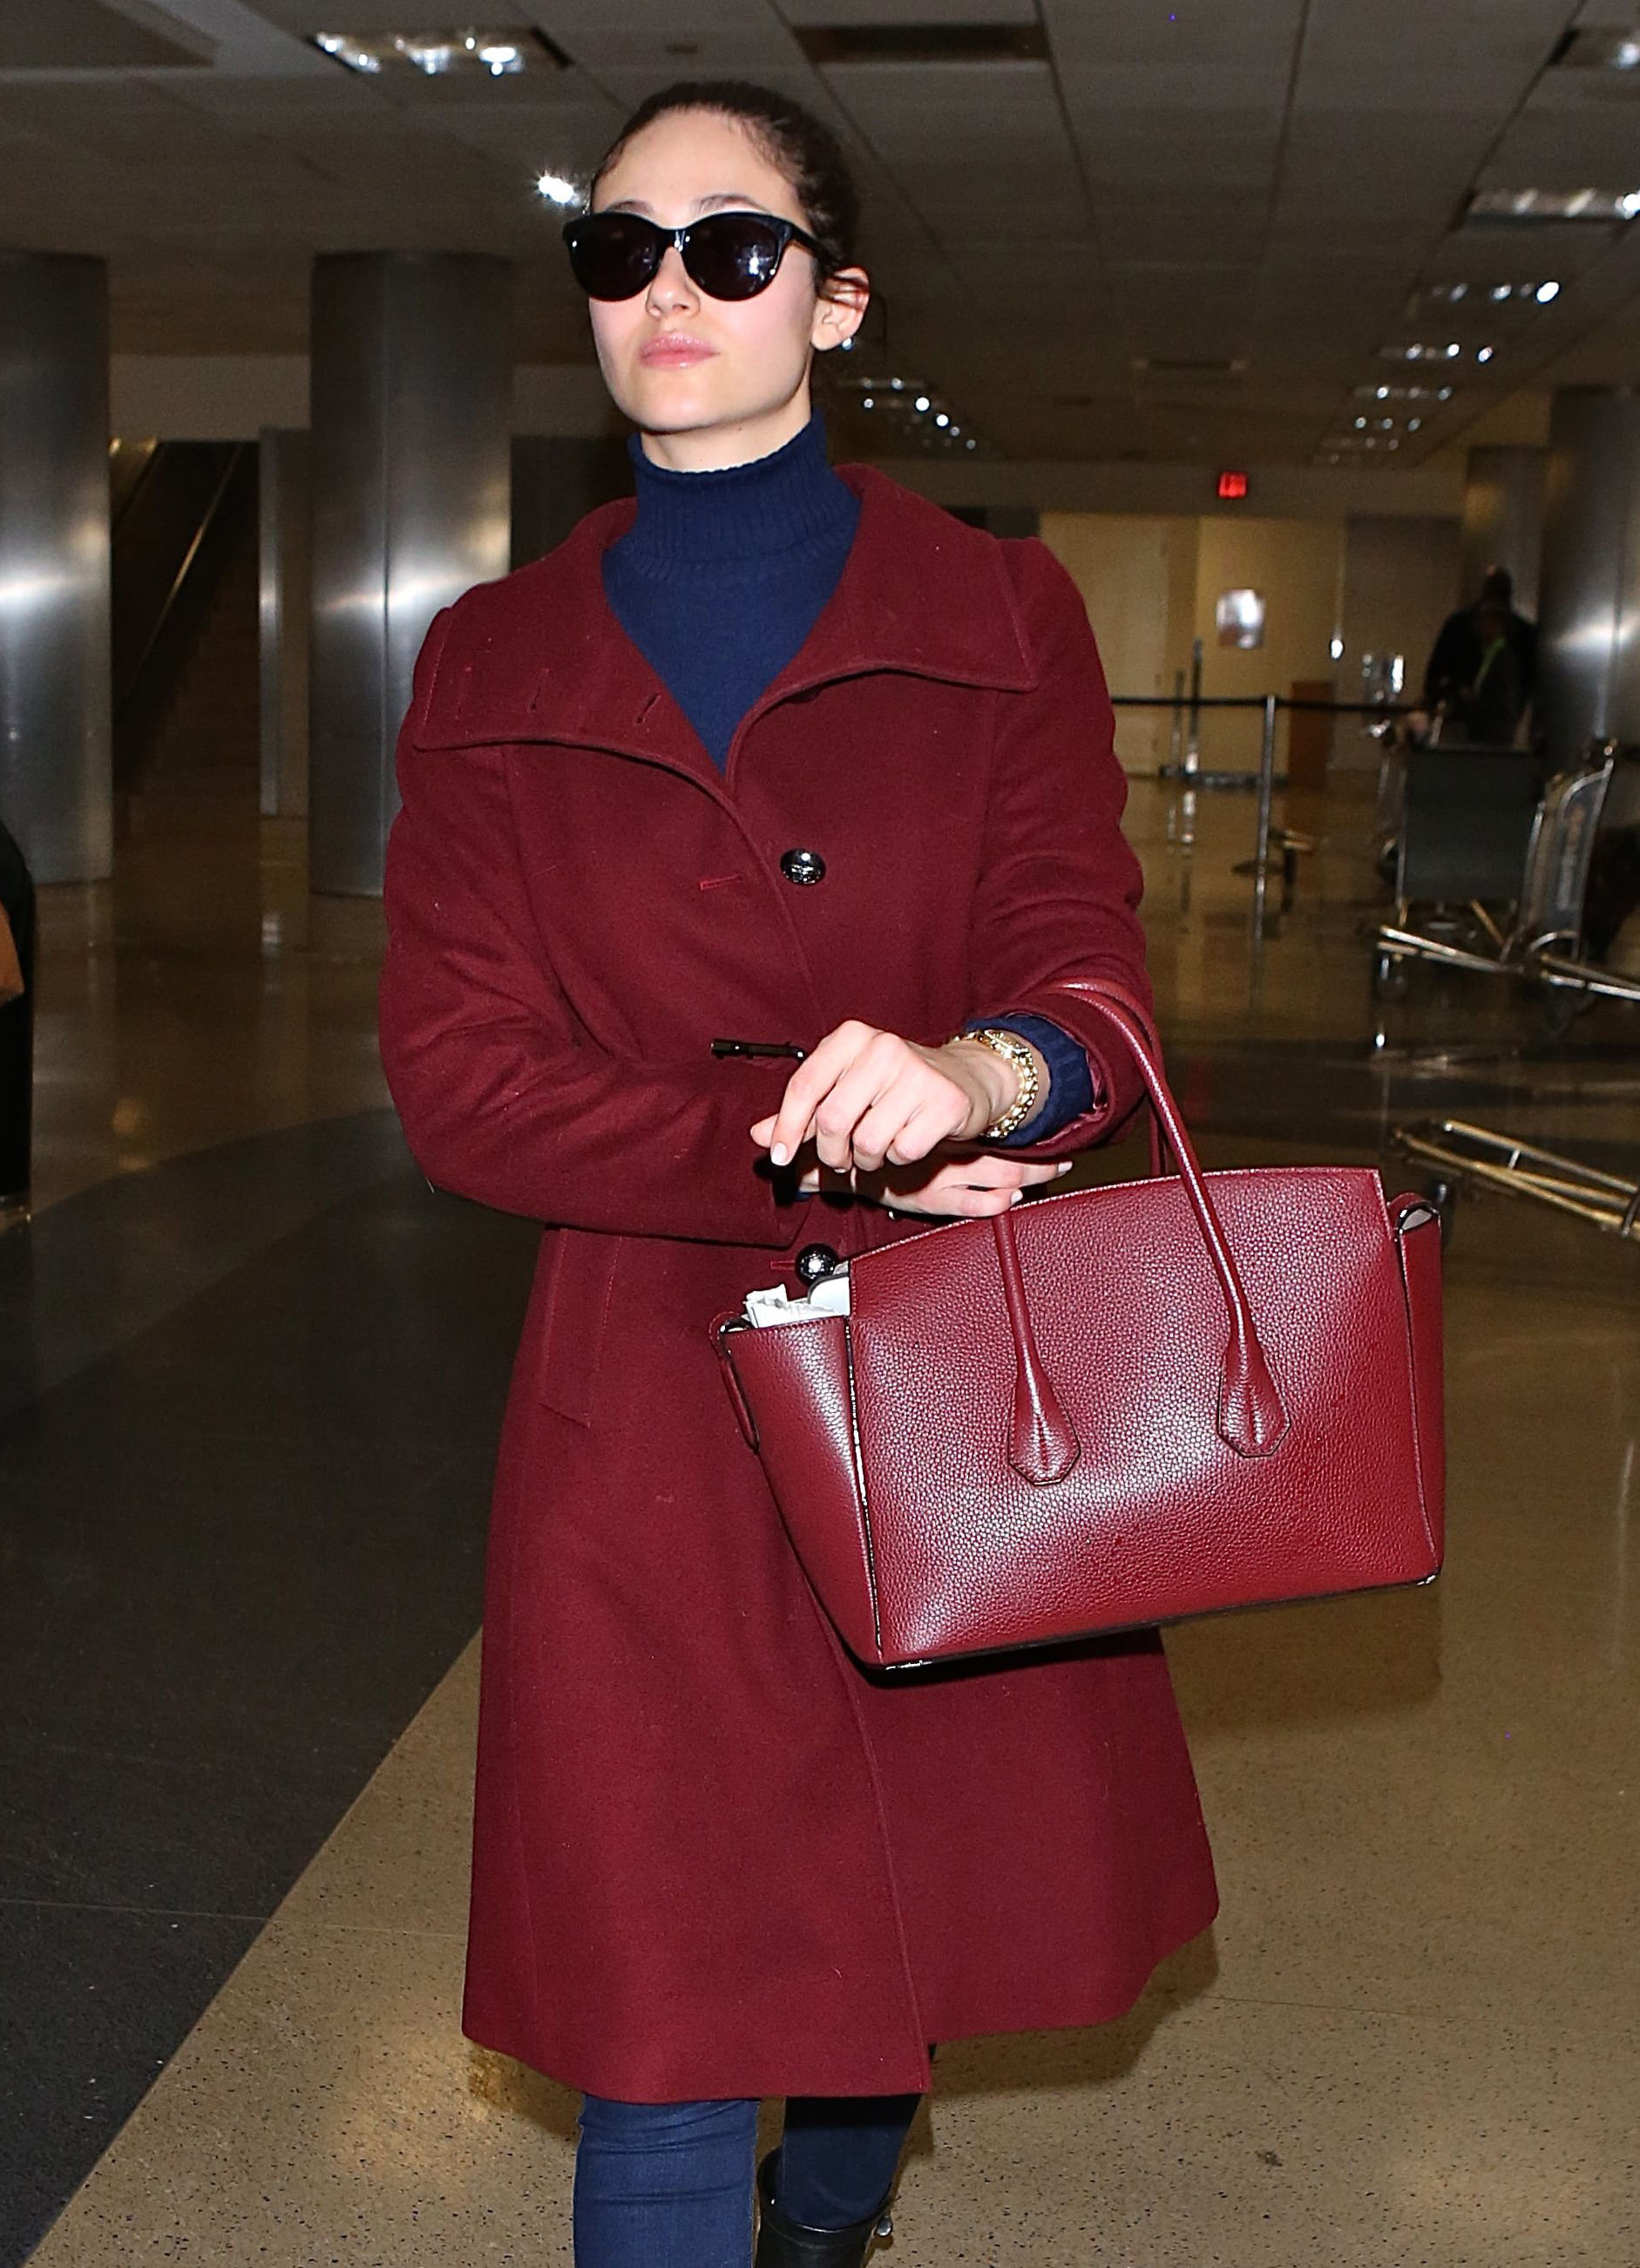 Emmy Rossum looks elegant as she arrives in Los Angeles at LAX